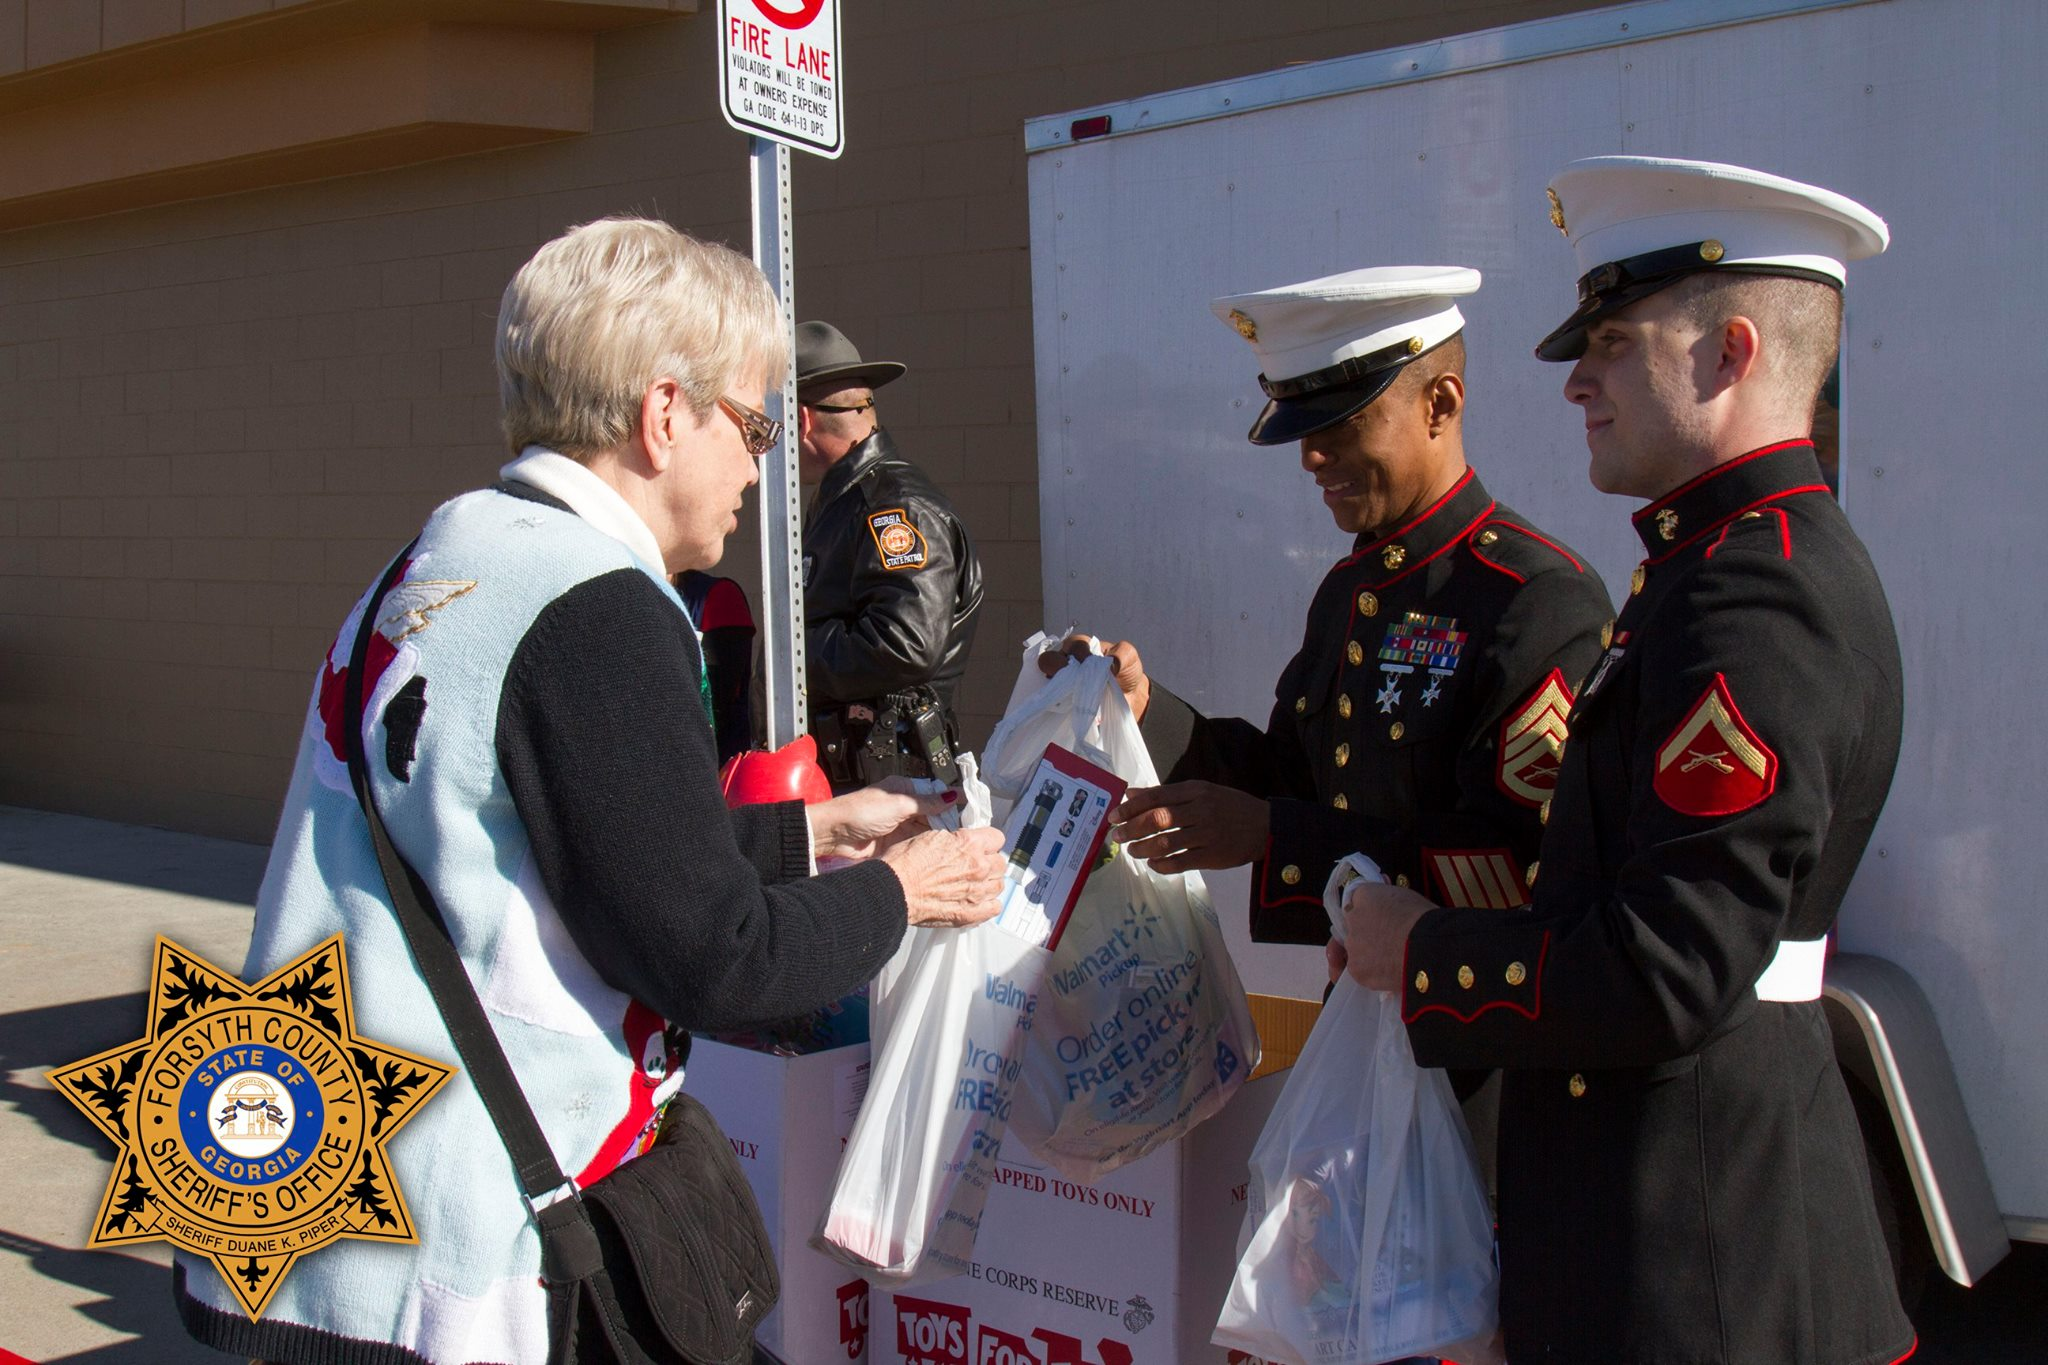 Forsyth Sheriff Declares Toys For Tots Collection A Success